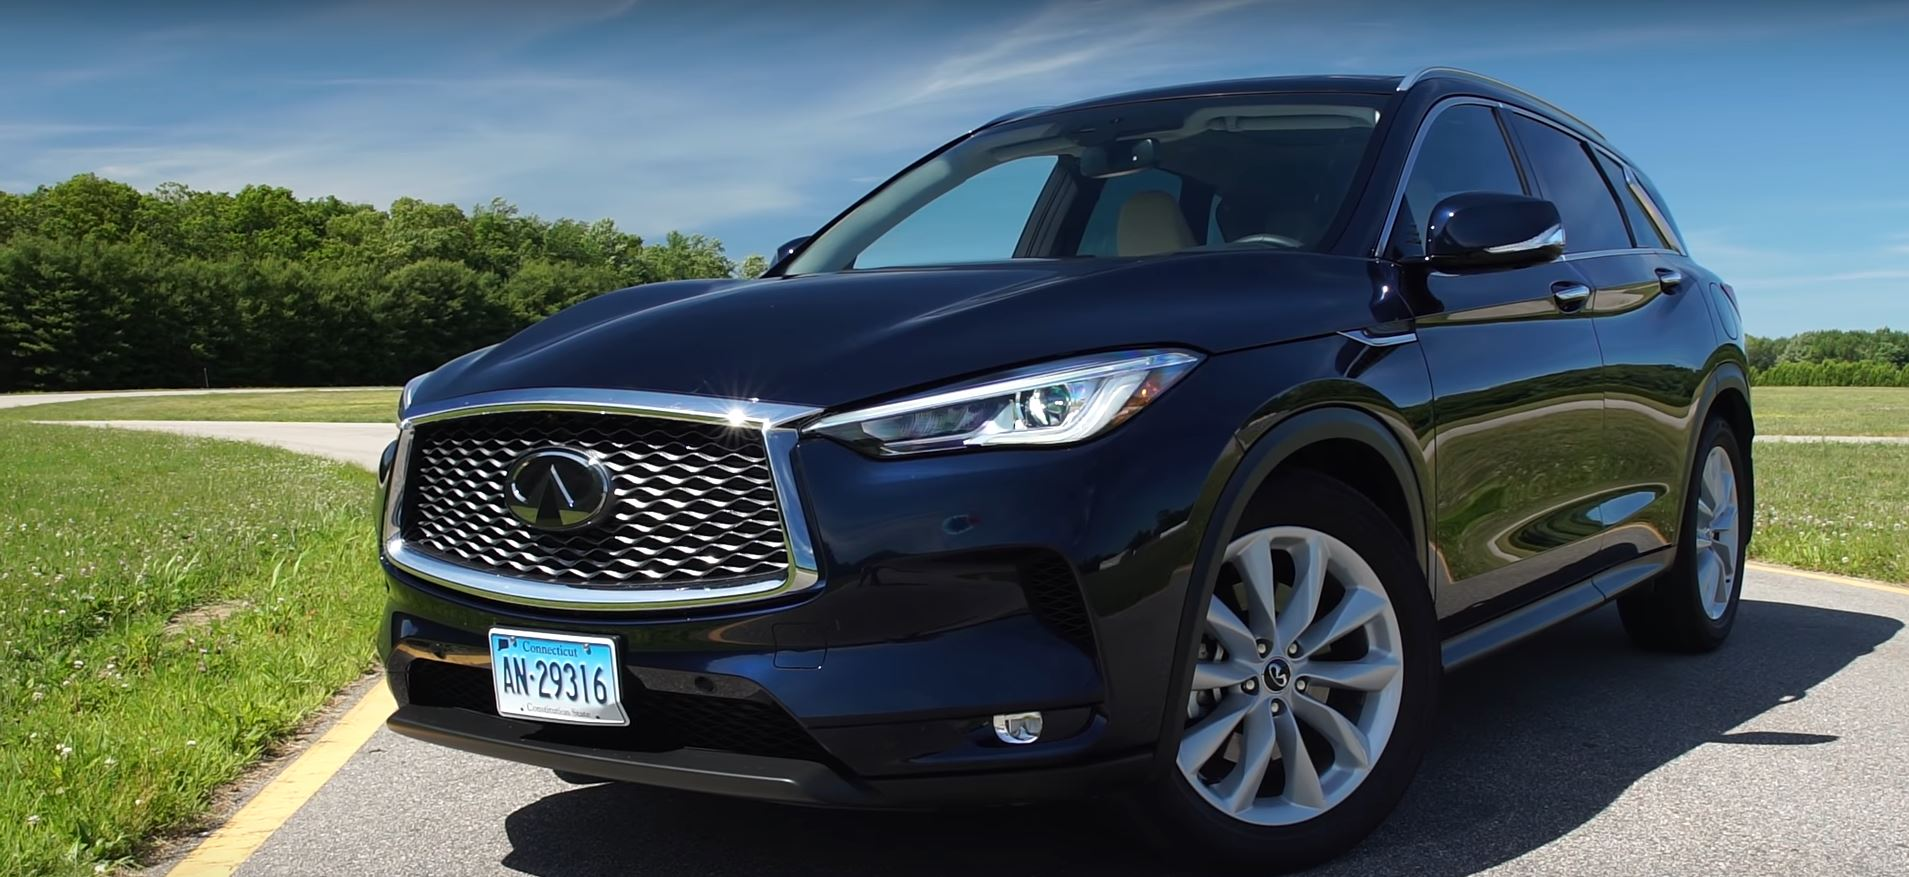 2019 Infiniti Qx50 Consumer Reviews Easypainting Co